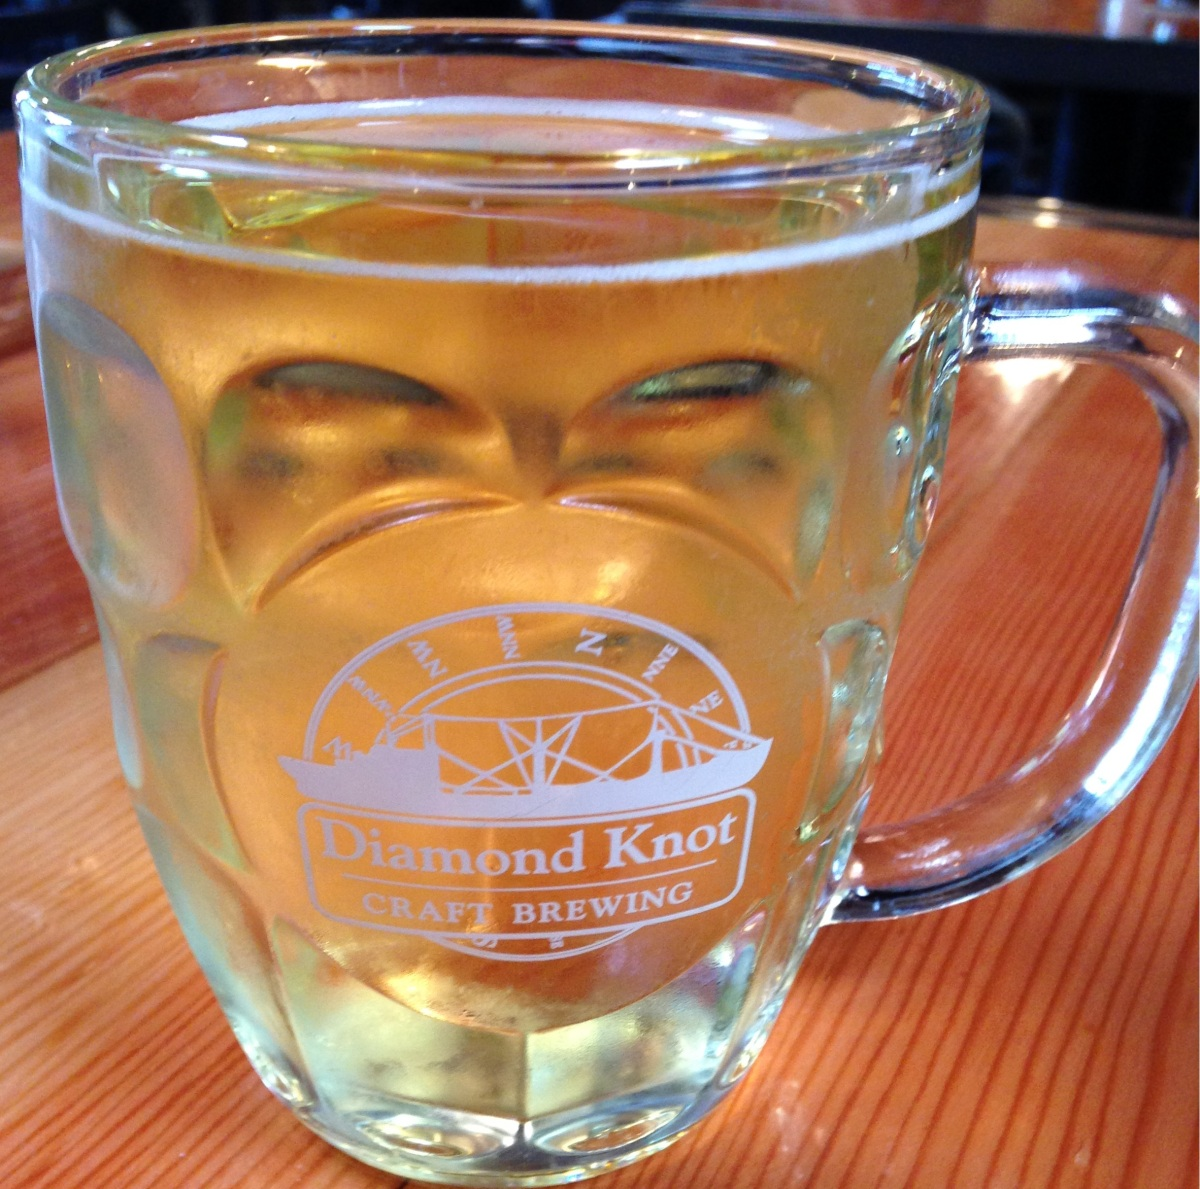 Grizzly Ciderworks The Ridge Cider Says